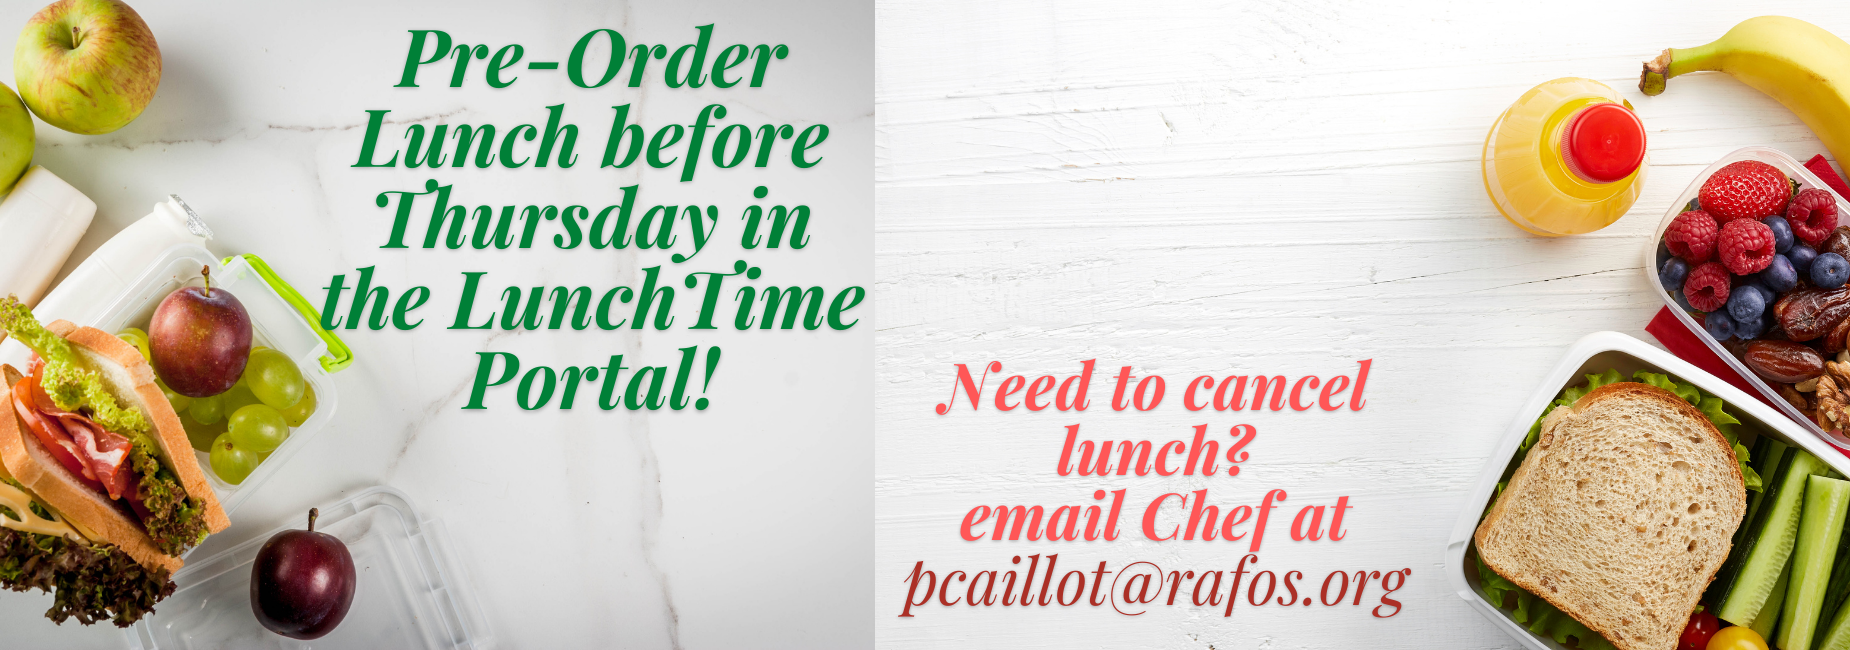 Pre order lunch by Thursday this week in the Lunch Portal for lunch next week.